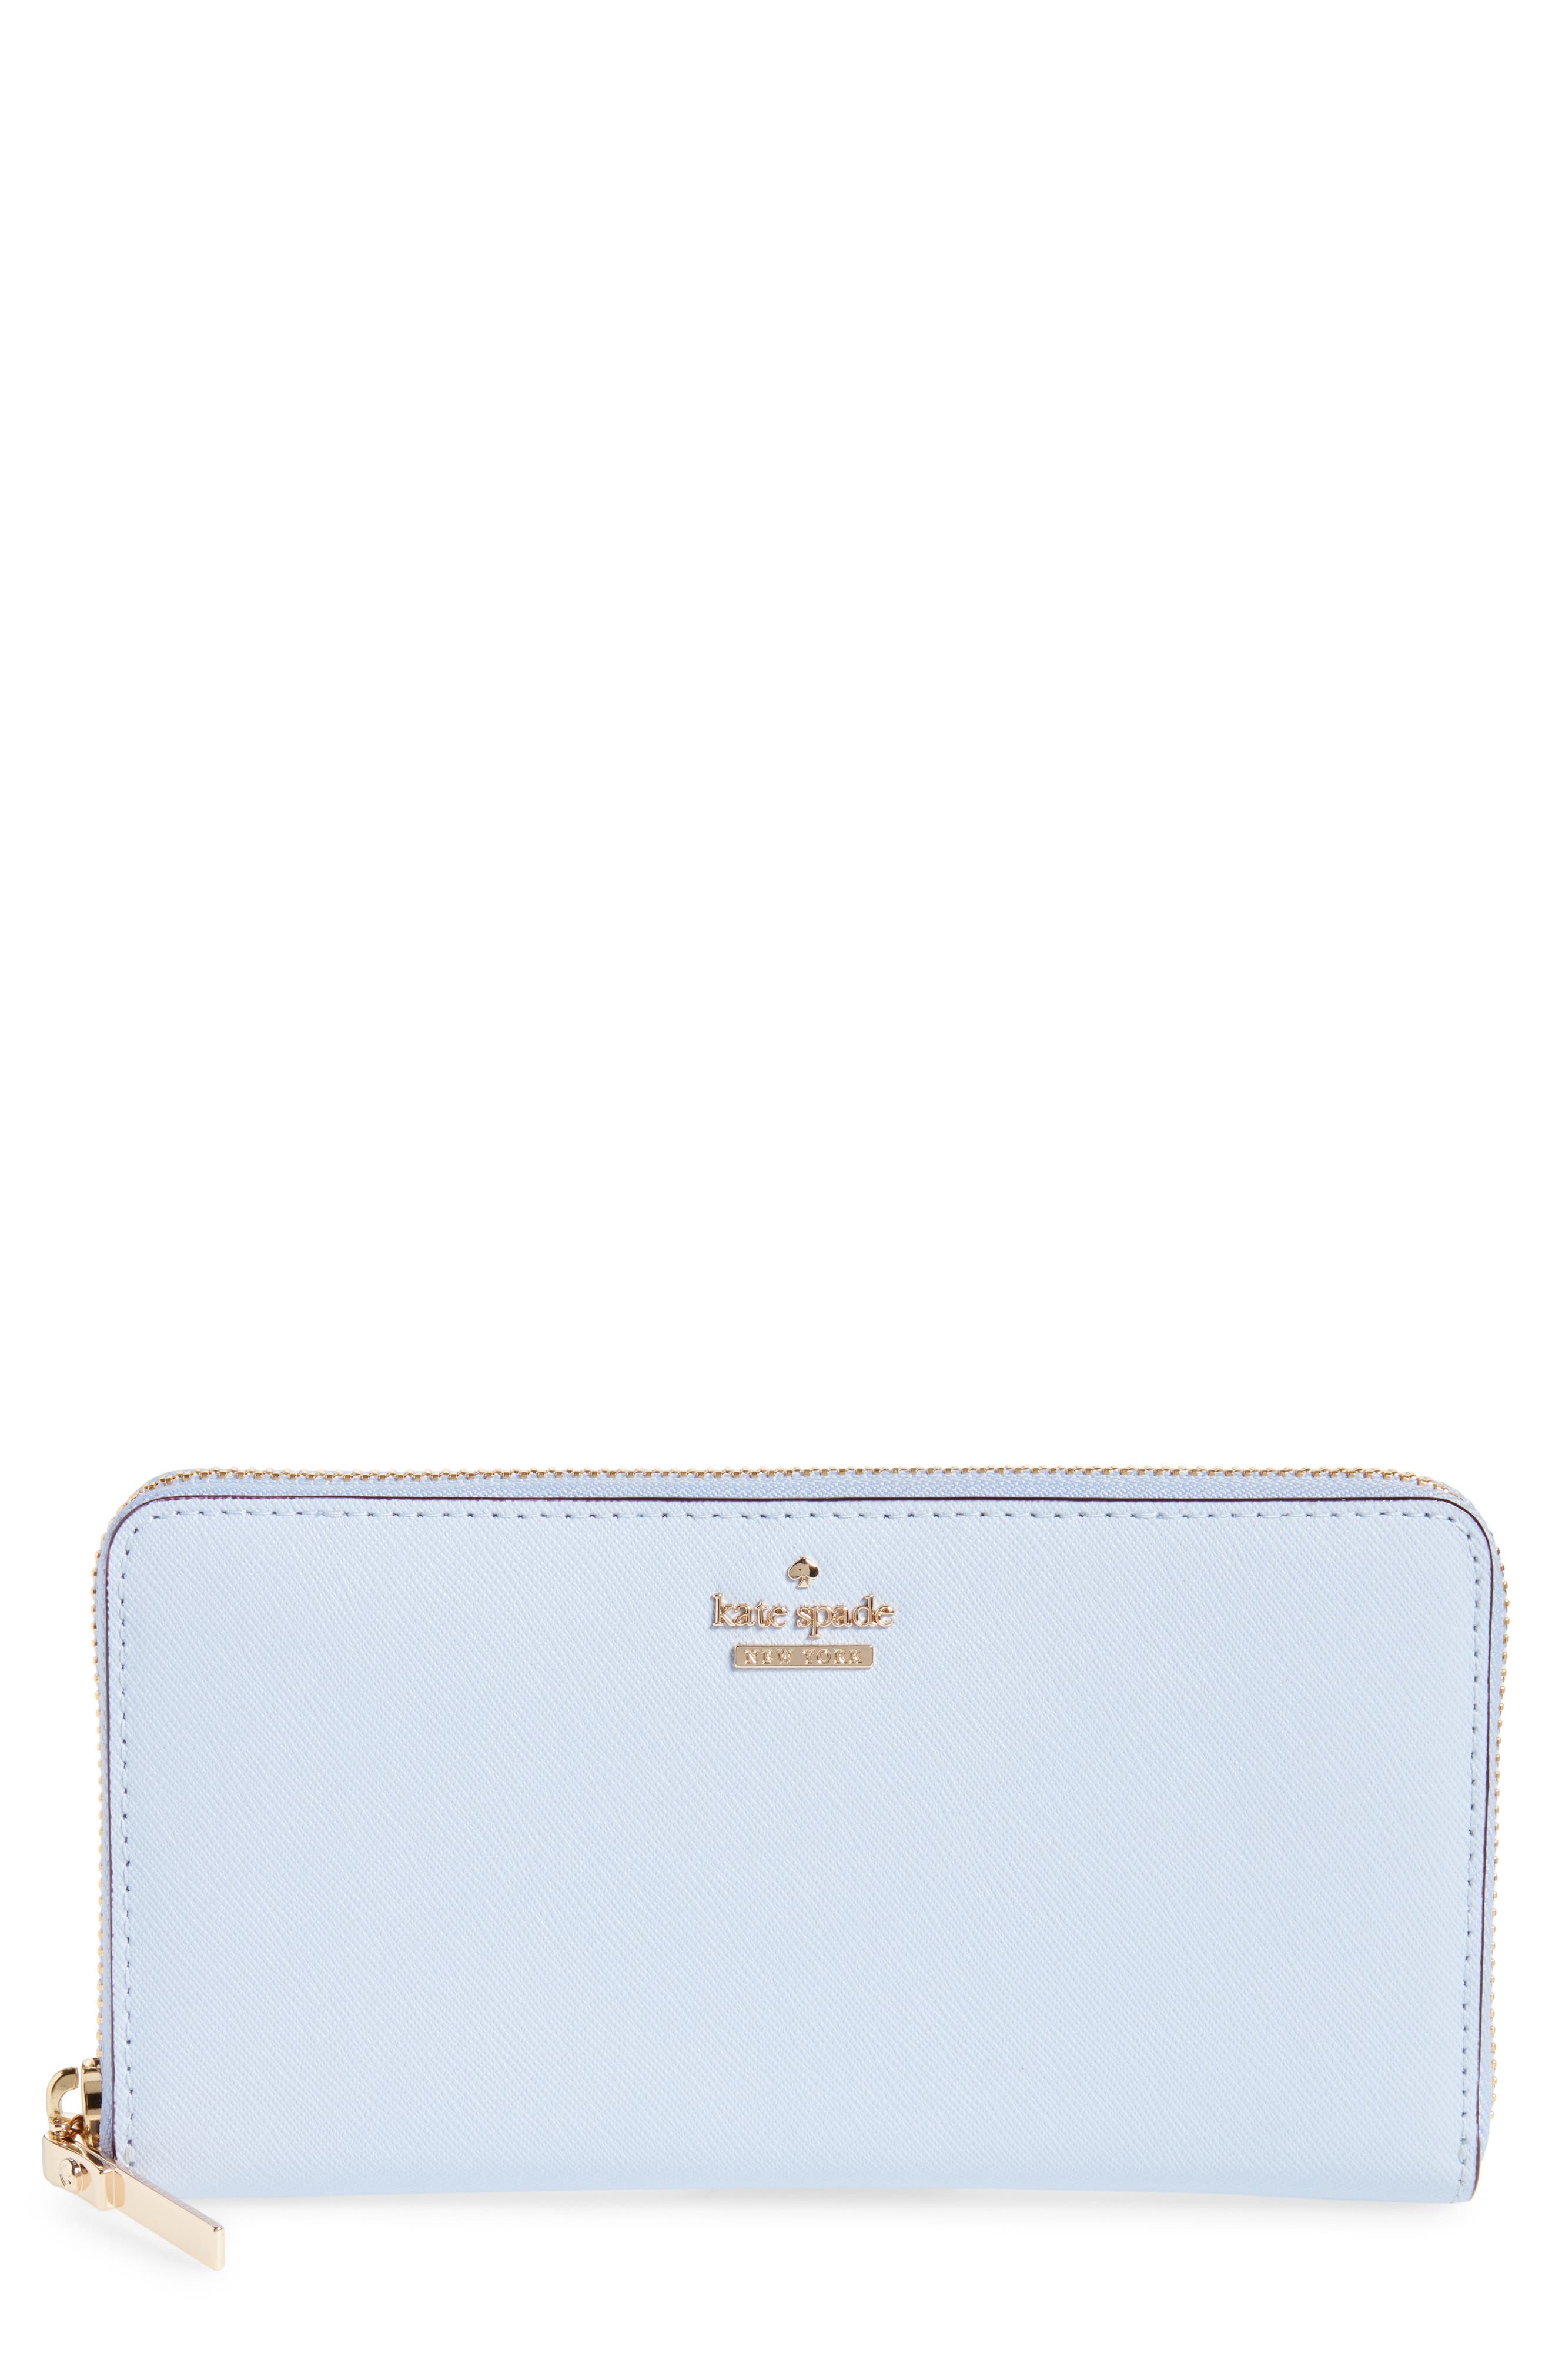 'cameron street - lacey' leather wallet,                         Main,                         color, Morning Dawn